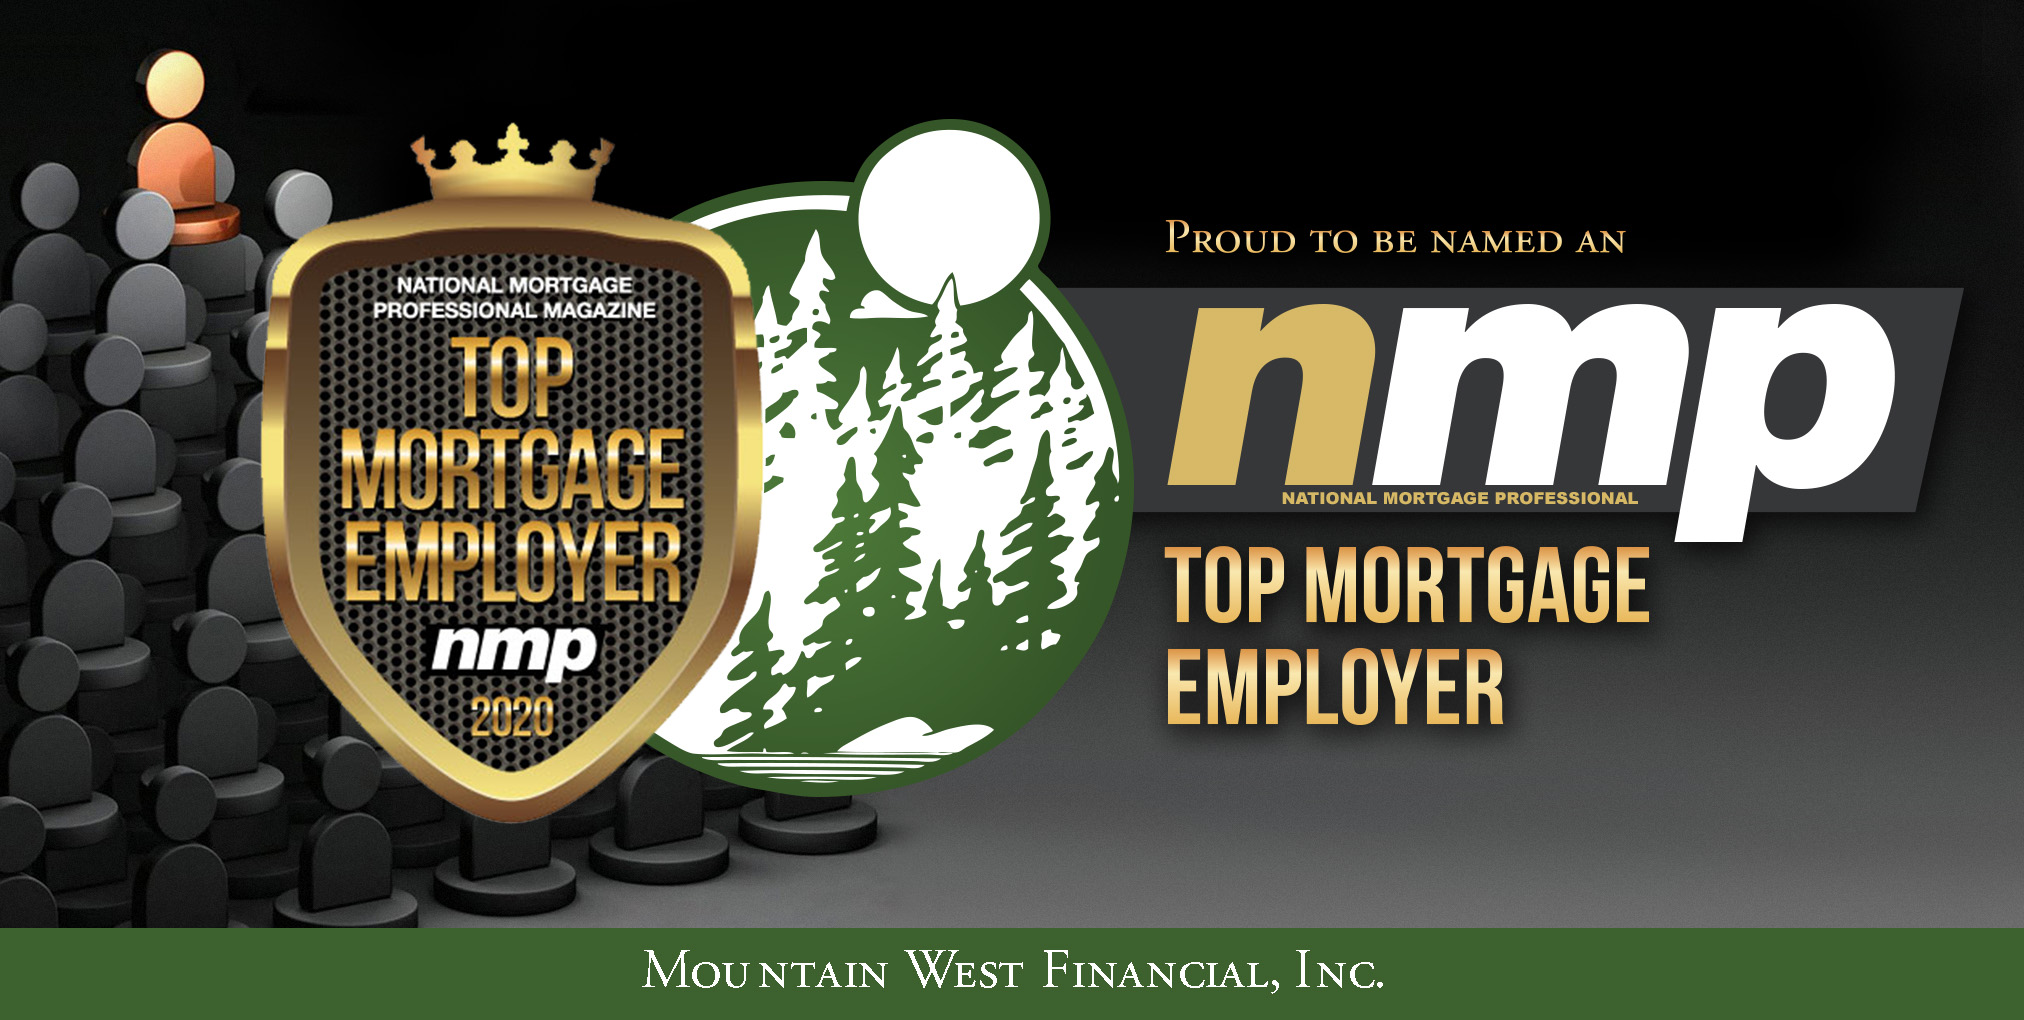 Mountain West Financial, Inc. Wins National Award as Top Mortgage Employer in 2020